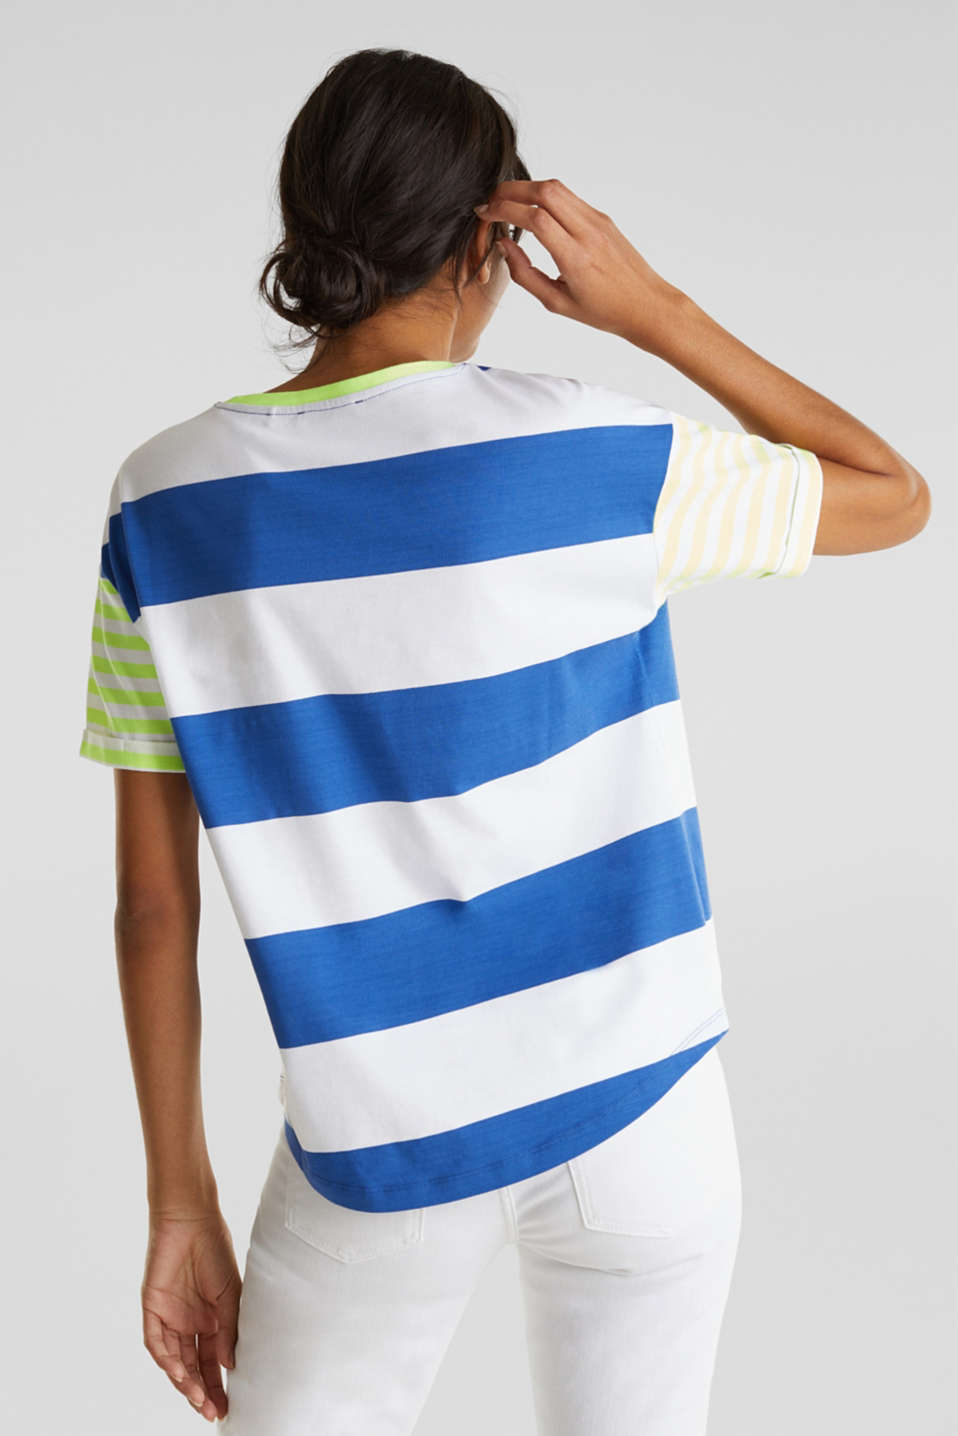 NEON T-shirt with block stripes, 100% cotton, BRIGHT BLUE, detail image number 3